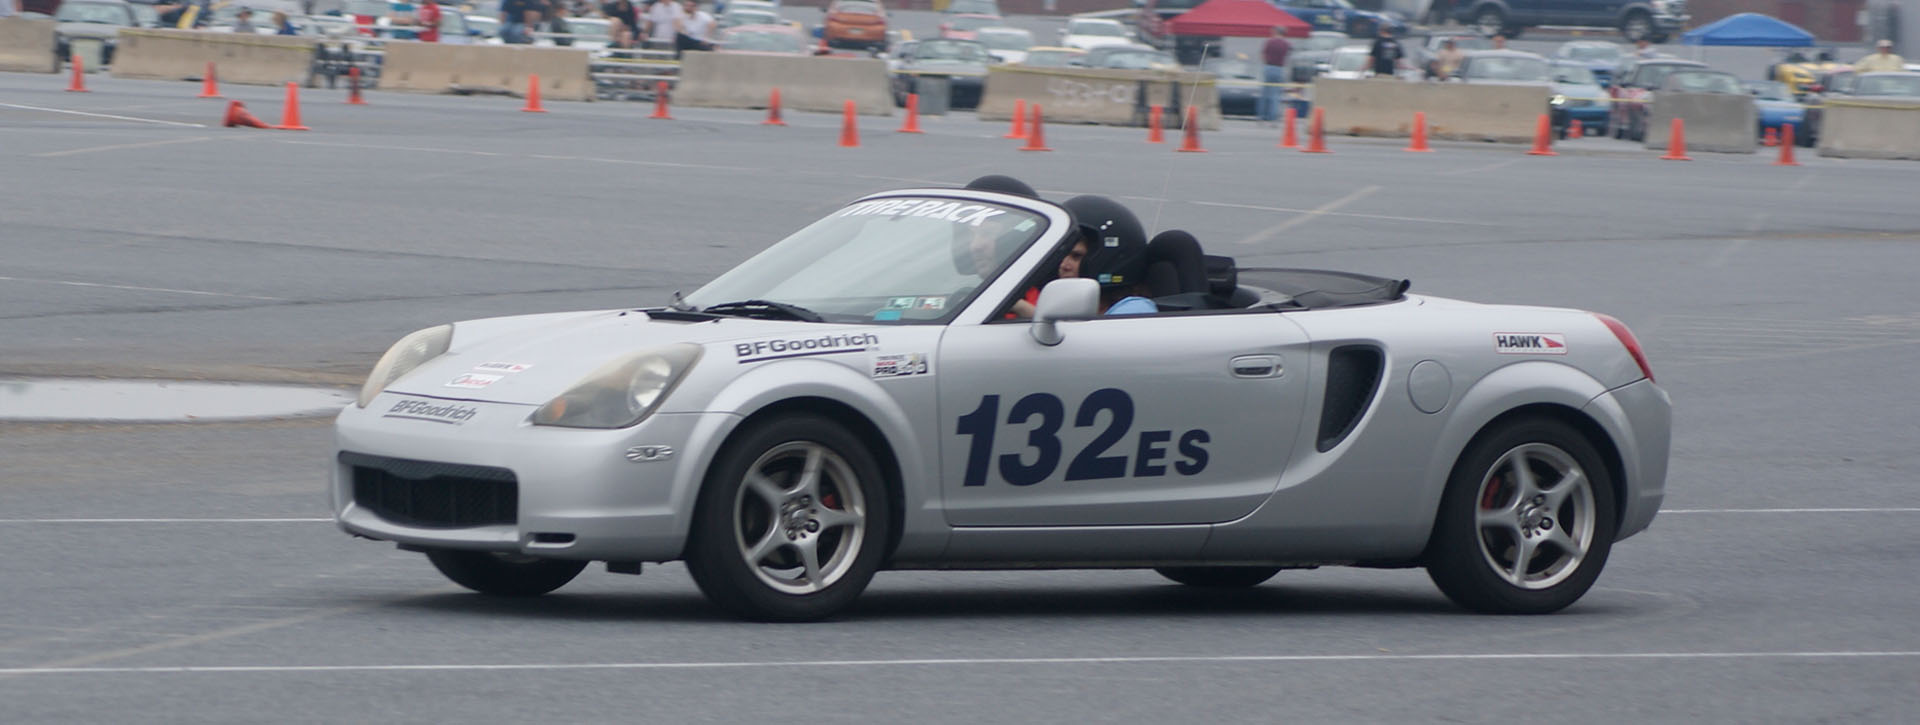 <p>Name: Melissa Mauro From: Harrisburg, PA Runs: Autocross Drives: 2001 Toyota MR2 Member Since: 2016 If you have been to any of the Susquehanna Region's AutoCross events in 2017, you likely ran into Melissa at registration. If you haven't run into her yet you will soon. Starting this month Melissa is [&hellip;]</p>